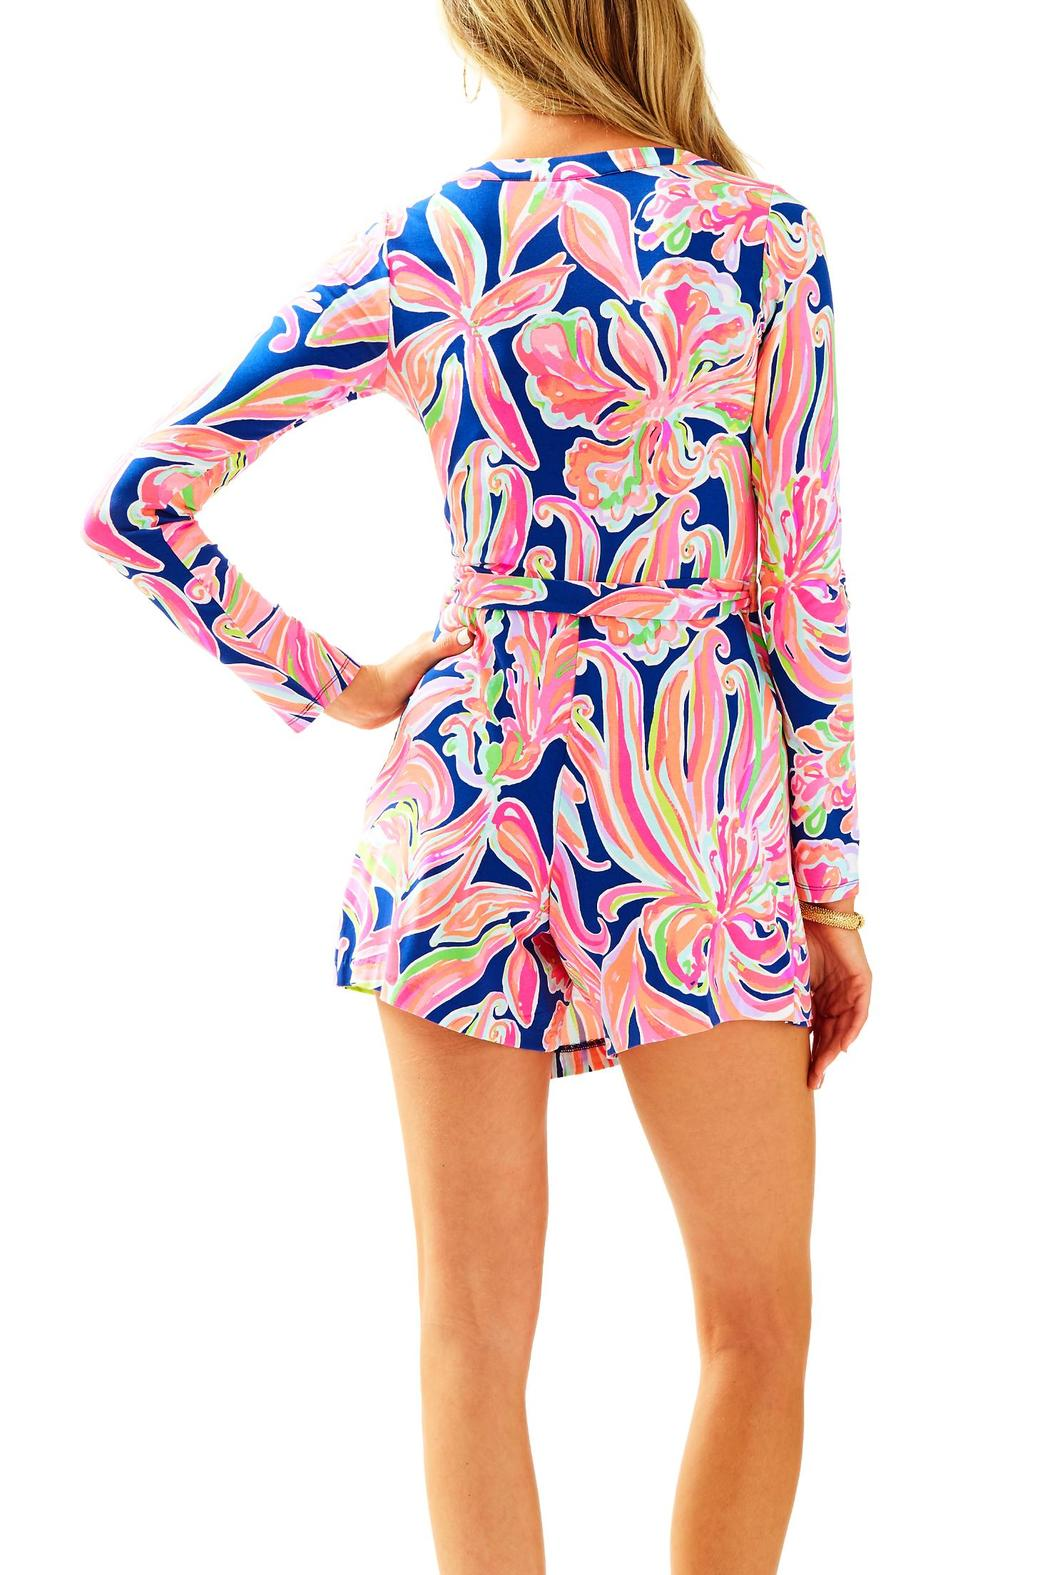 628bd4ec06afbc Lilly Pulitzer Tiki Wrap Romper from Massachusetts by Seaside Allure ...